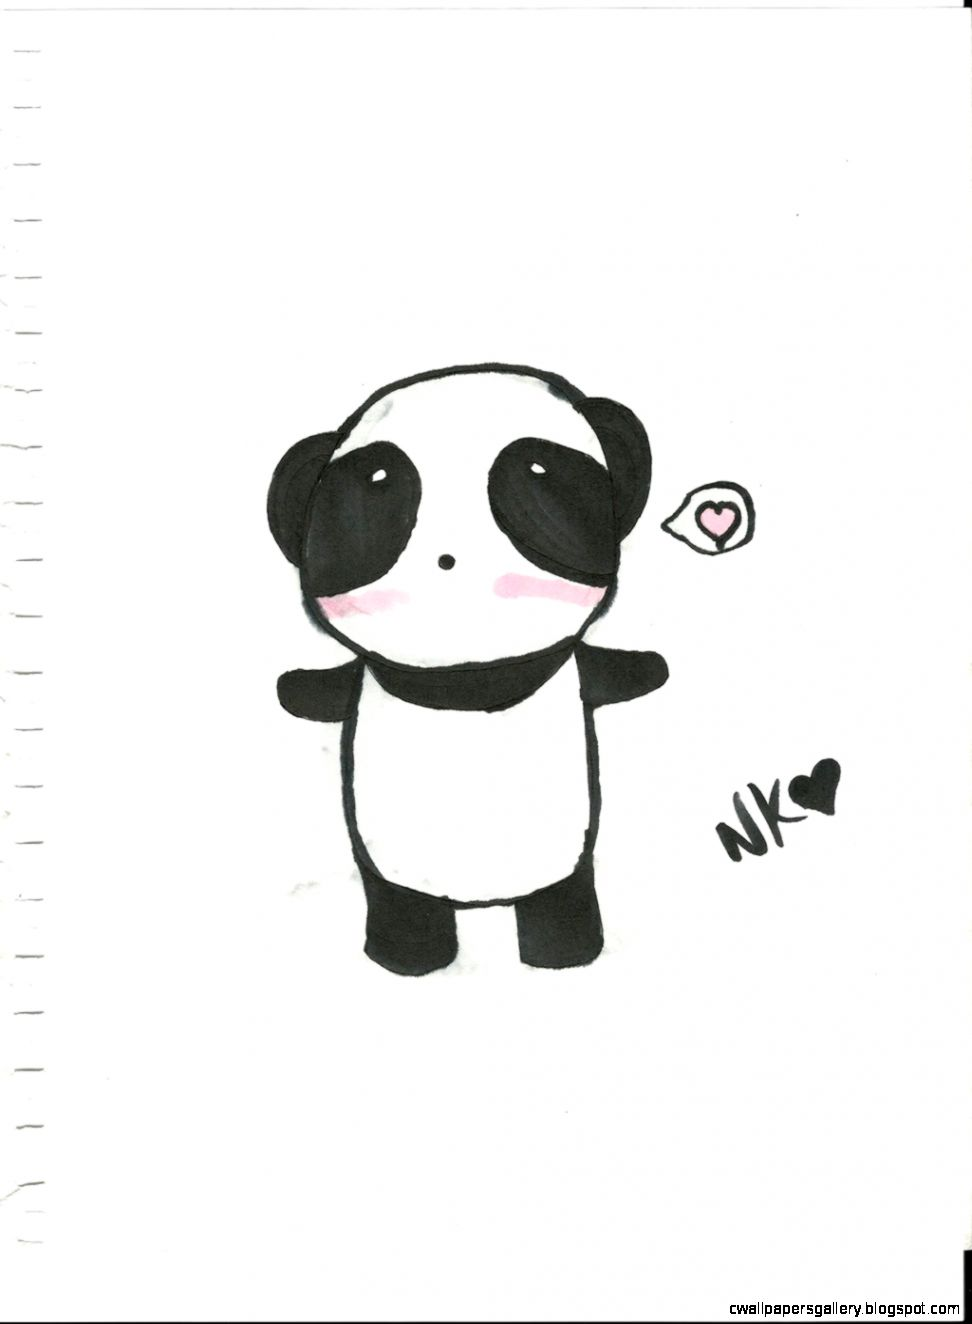 Cute Panda Drawing Tumblr | Wallpapers Gallery